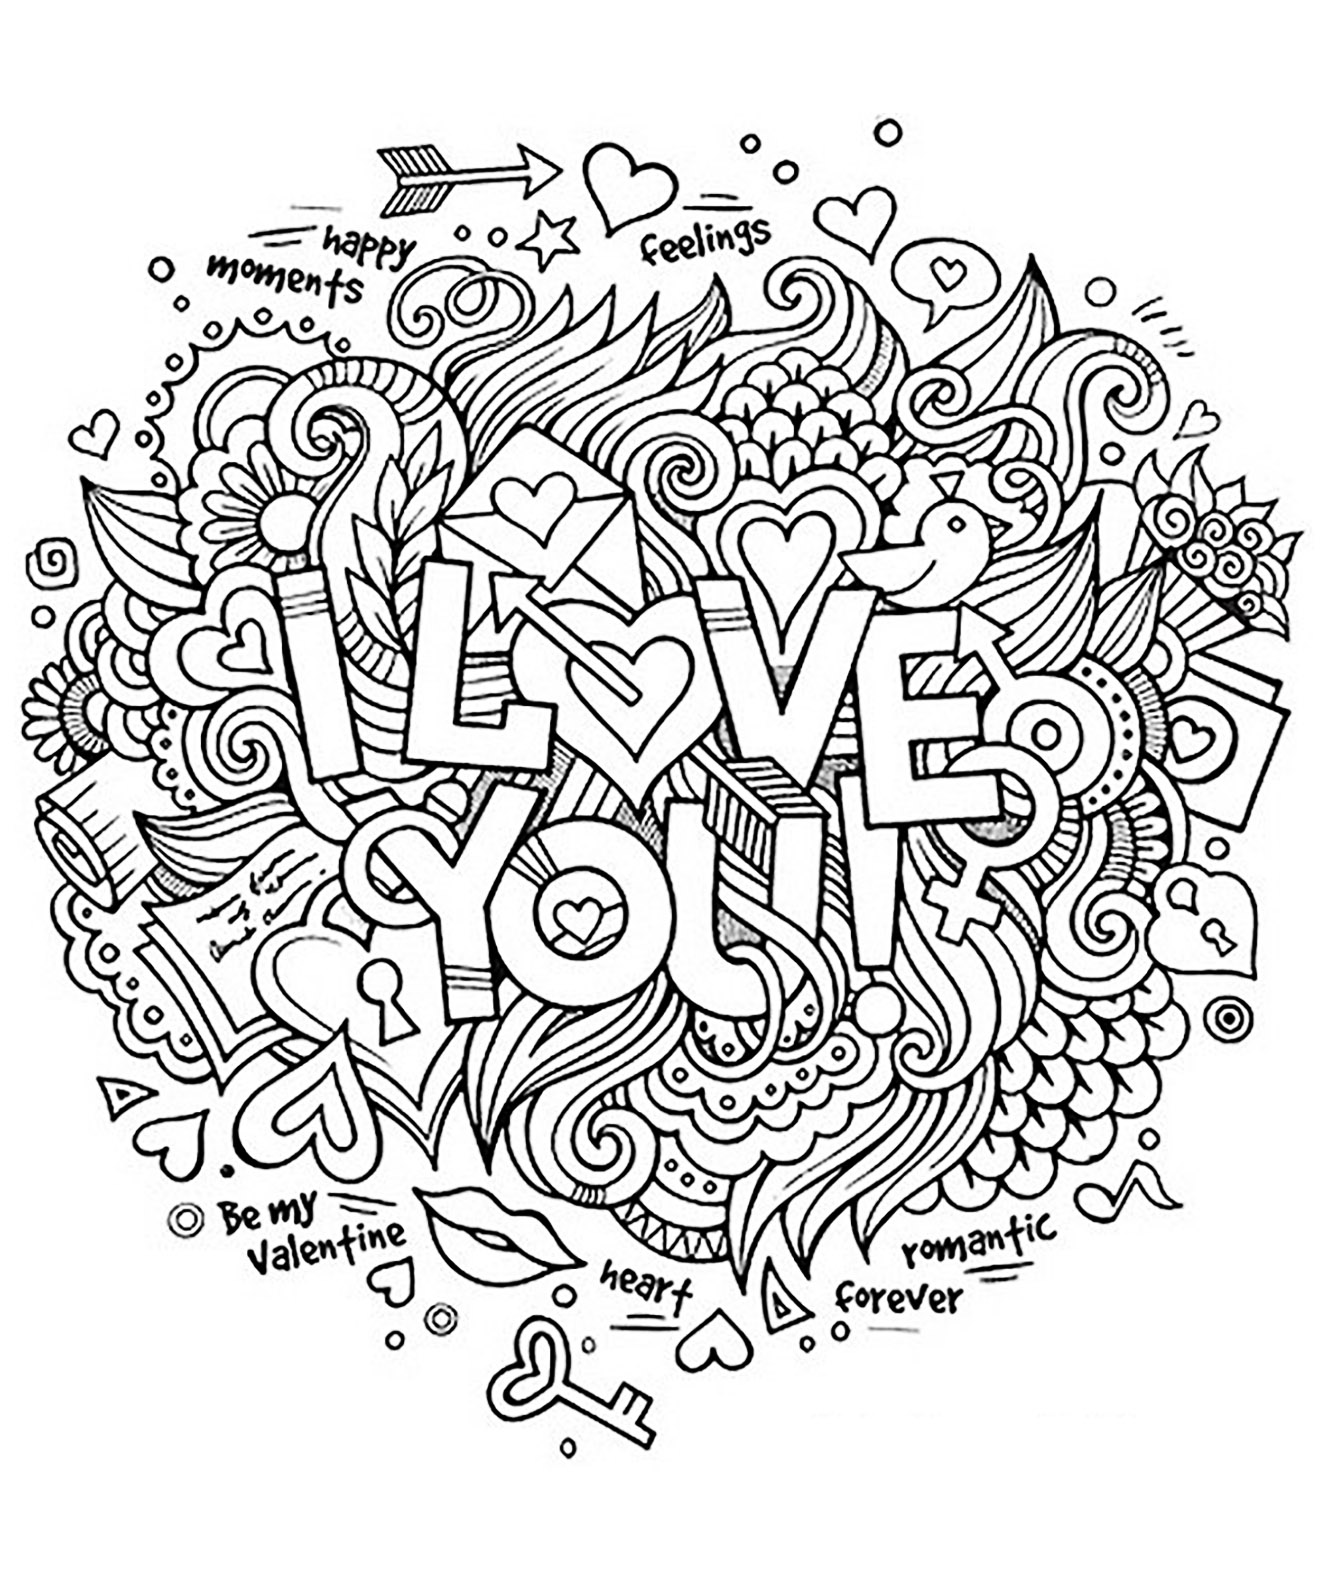 coloring sheet i love you get this free picture of i love you coloring pages prmlr sheet love coloring i you